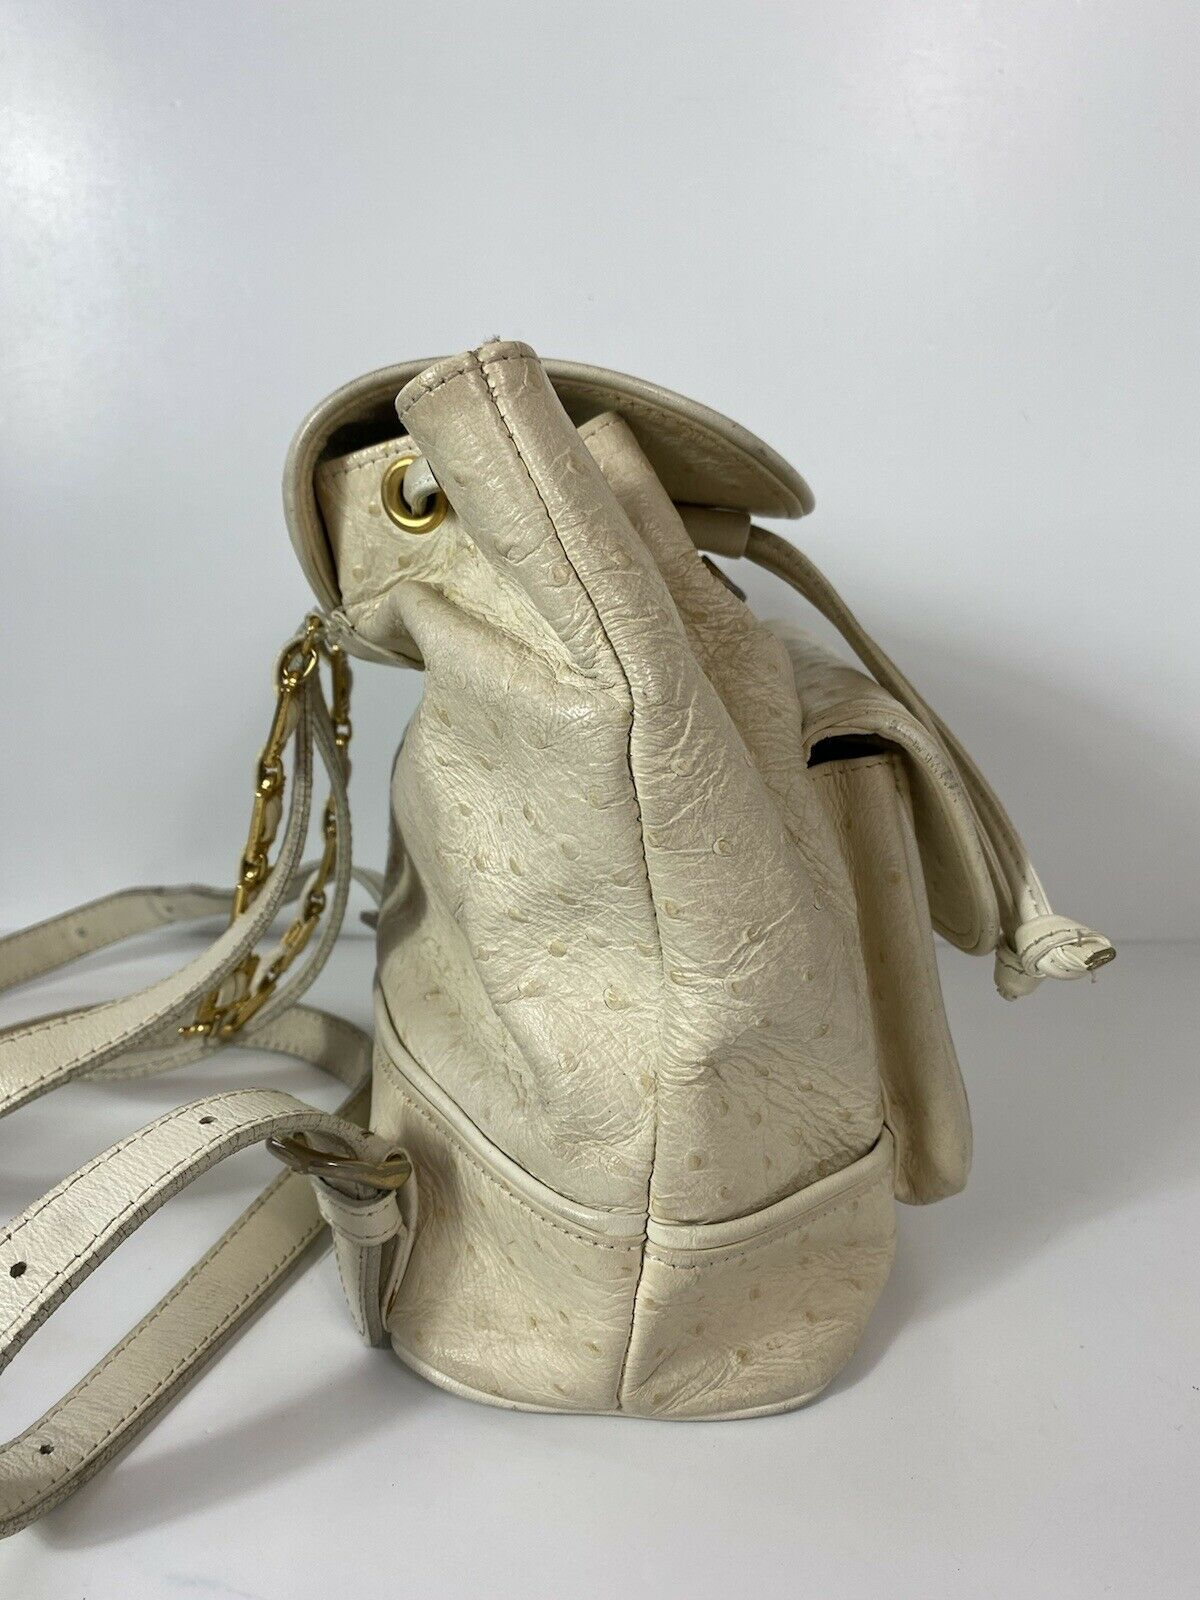 RARE VTG GIANNI VERSACE 90S WHITE OSTRICH BACKPACK - image 3